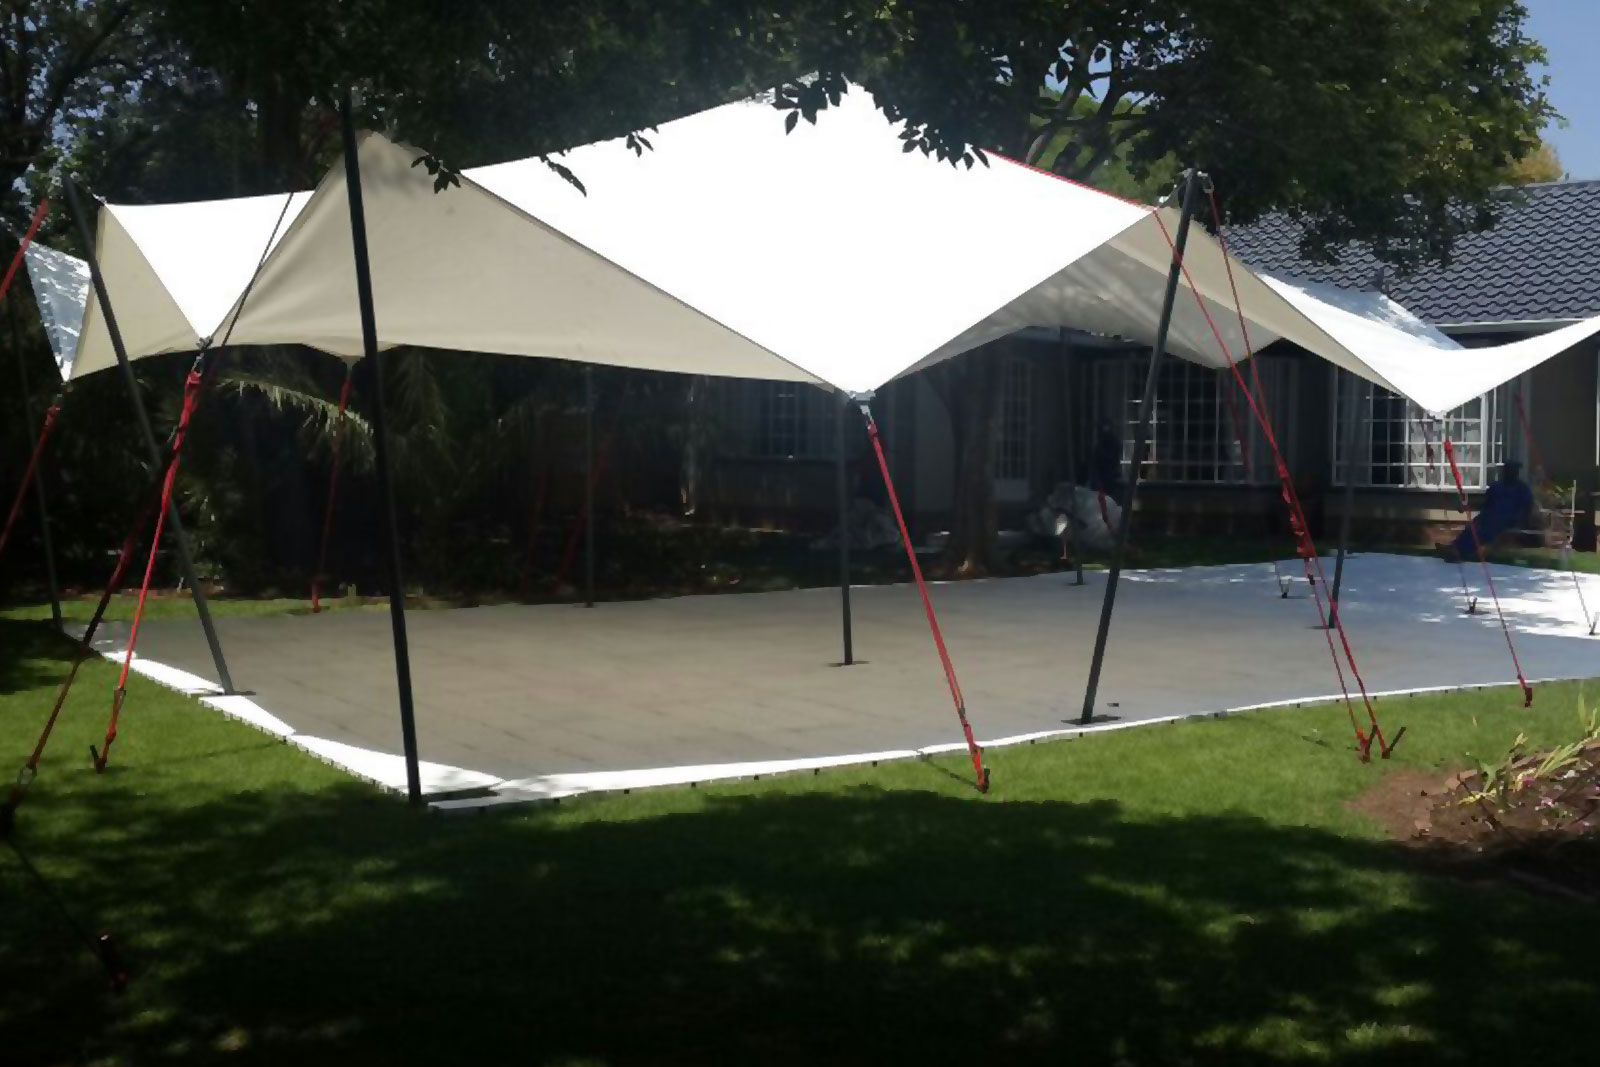 F3 Group & F3 Group | Holding Group for F3 Tents | Portable Tent Hire for Events